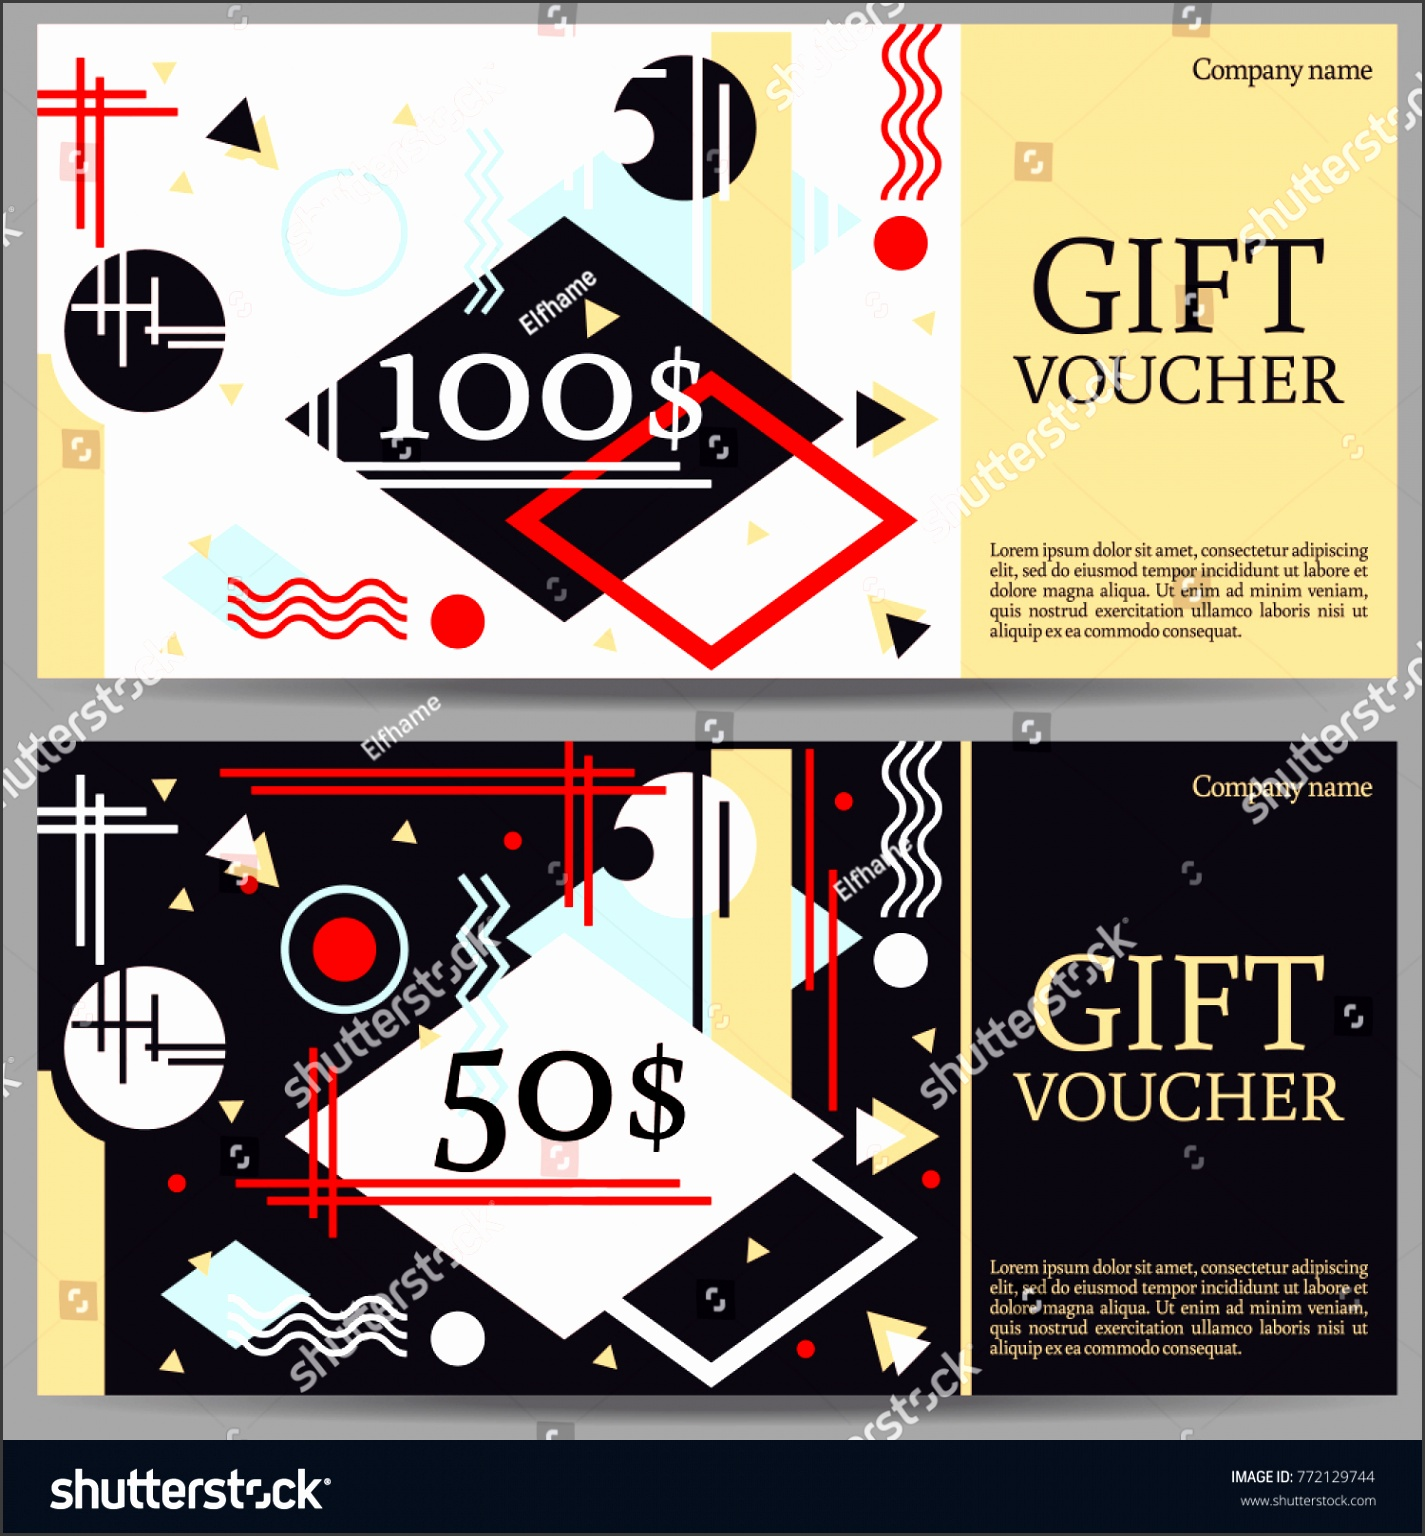 Voucher template applicable pictures t termination letter t voucher template modern abstraction pattern stock vector stock